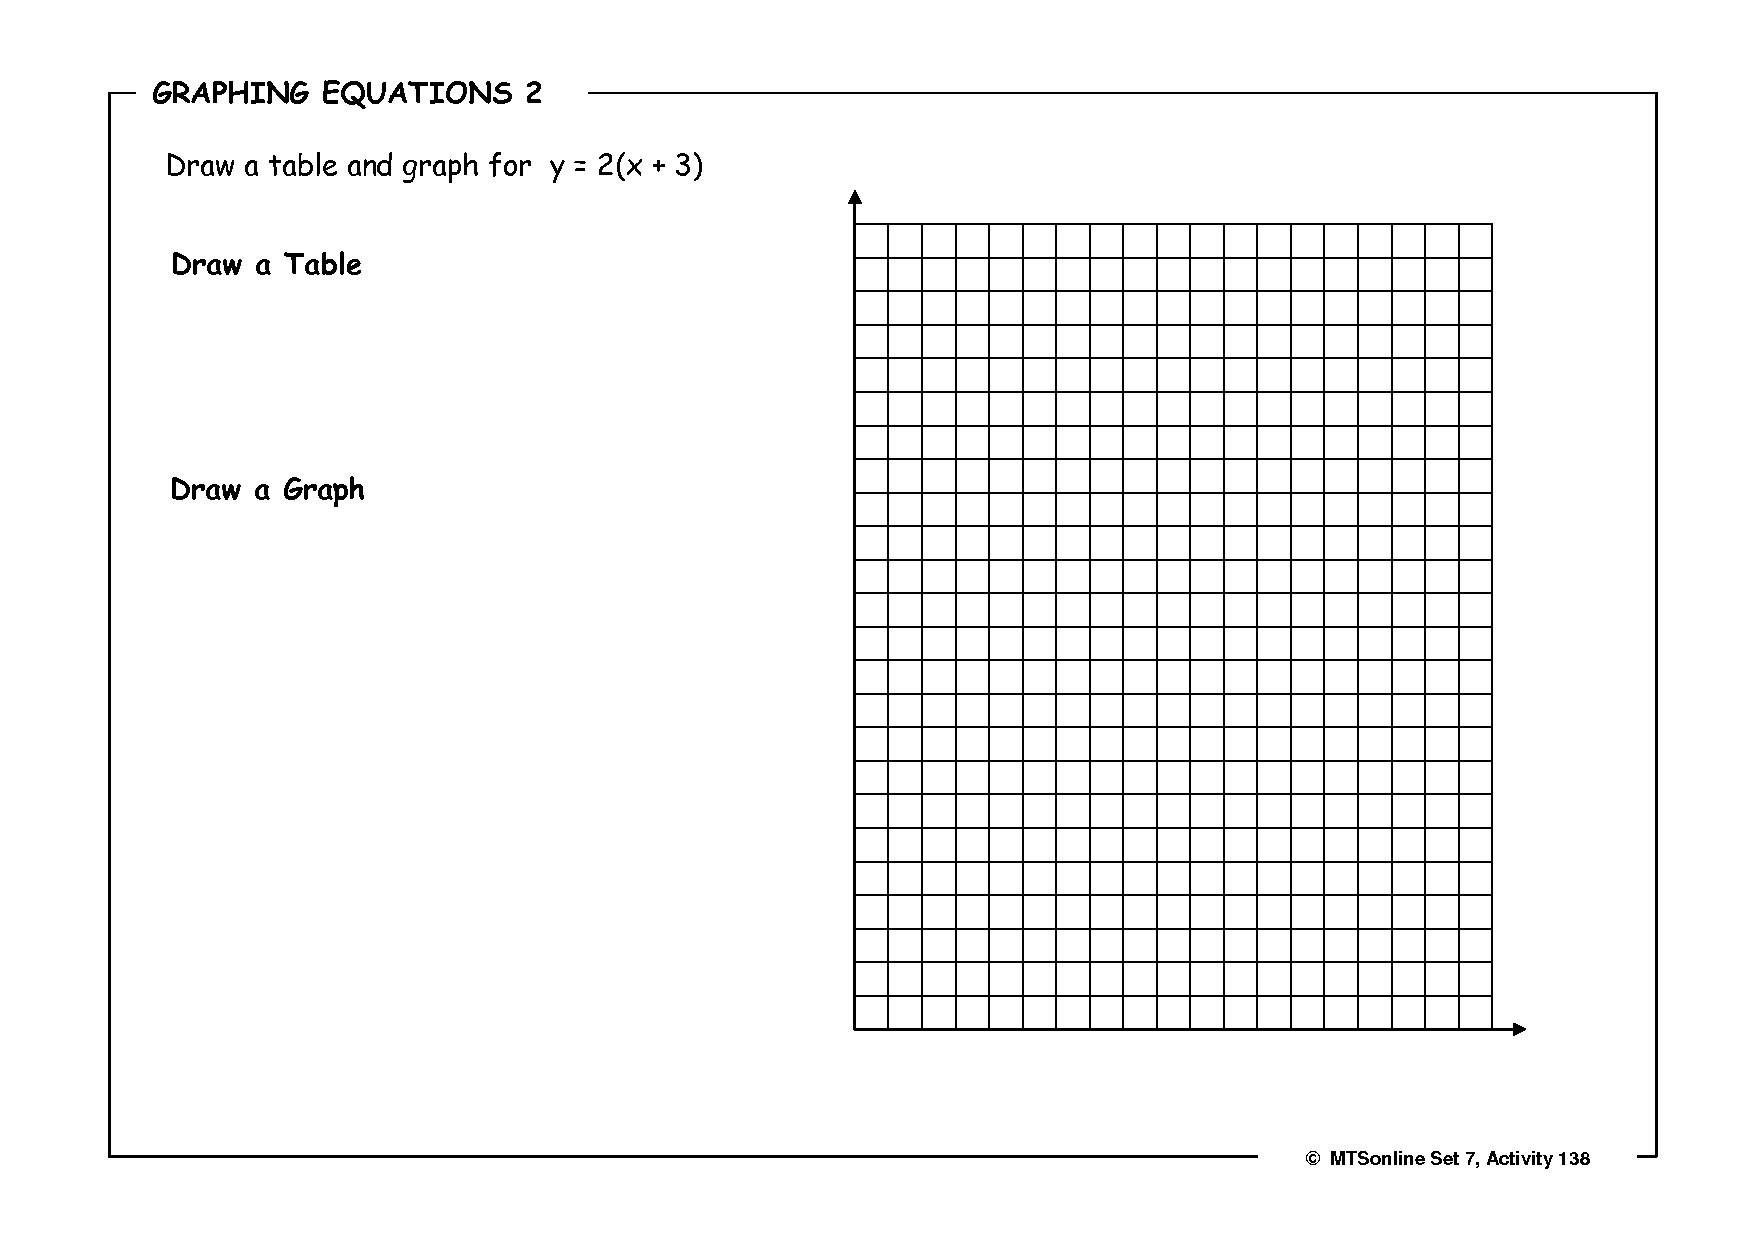 138graphing_equations_20001